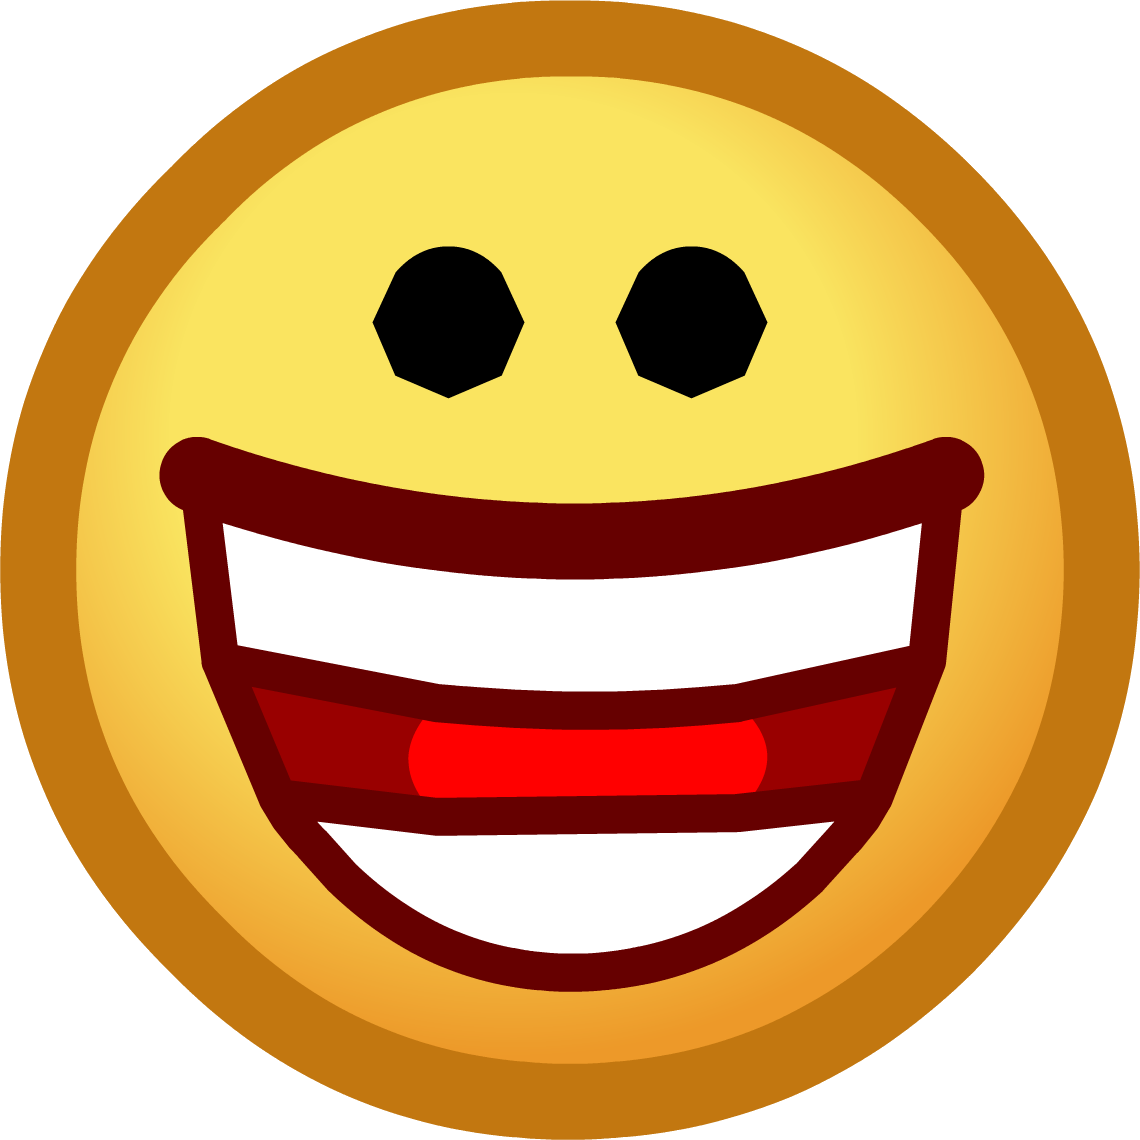 laughing%20smiley%20face%20emoticon